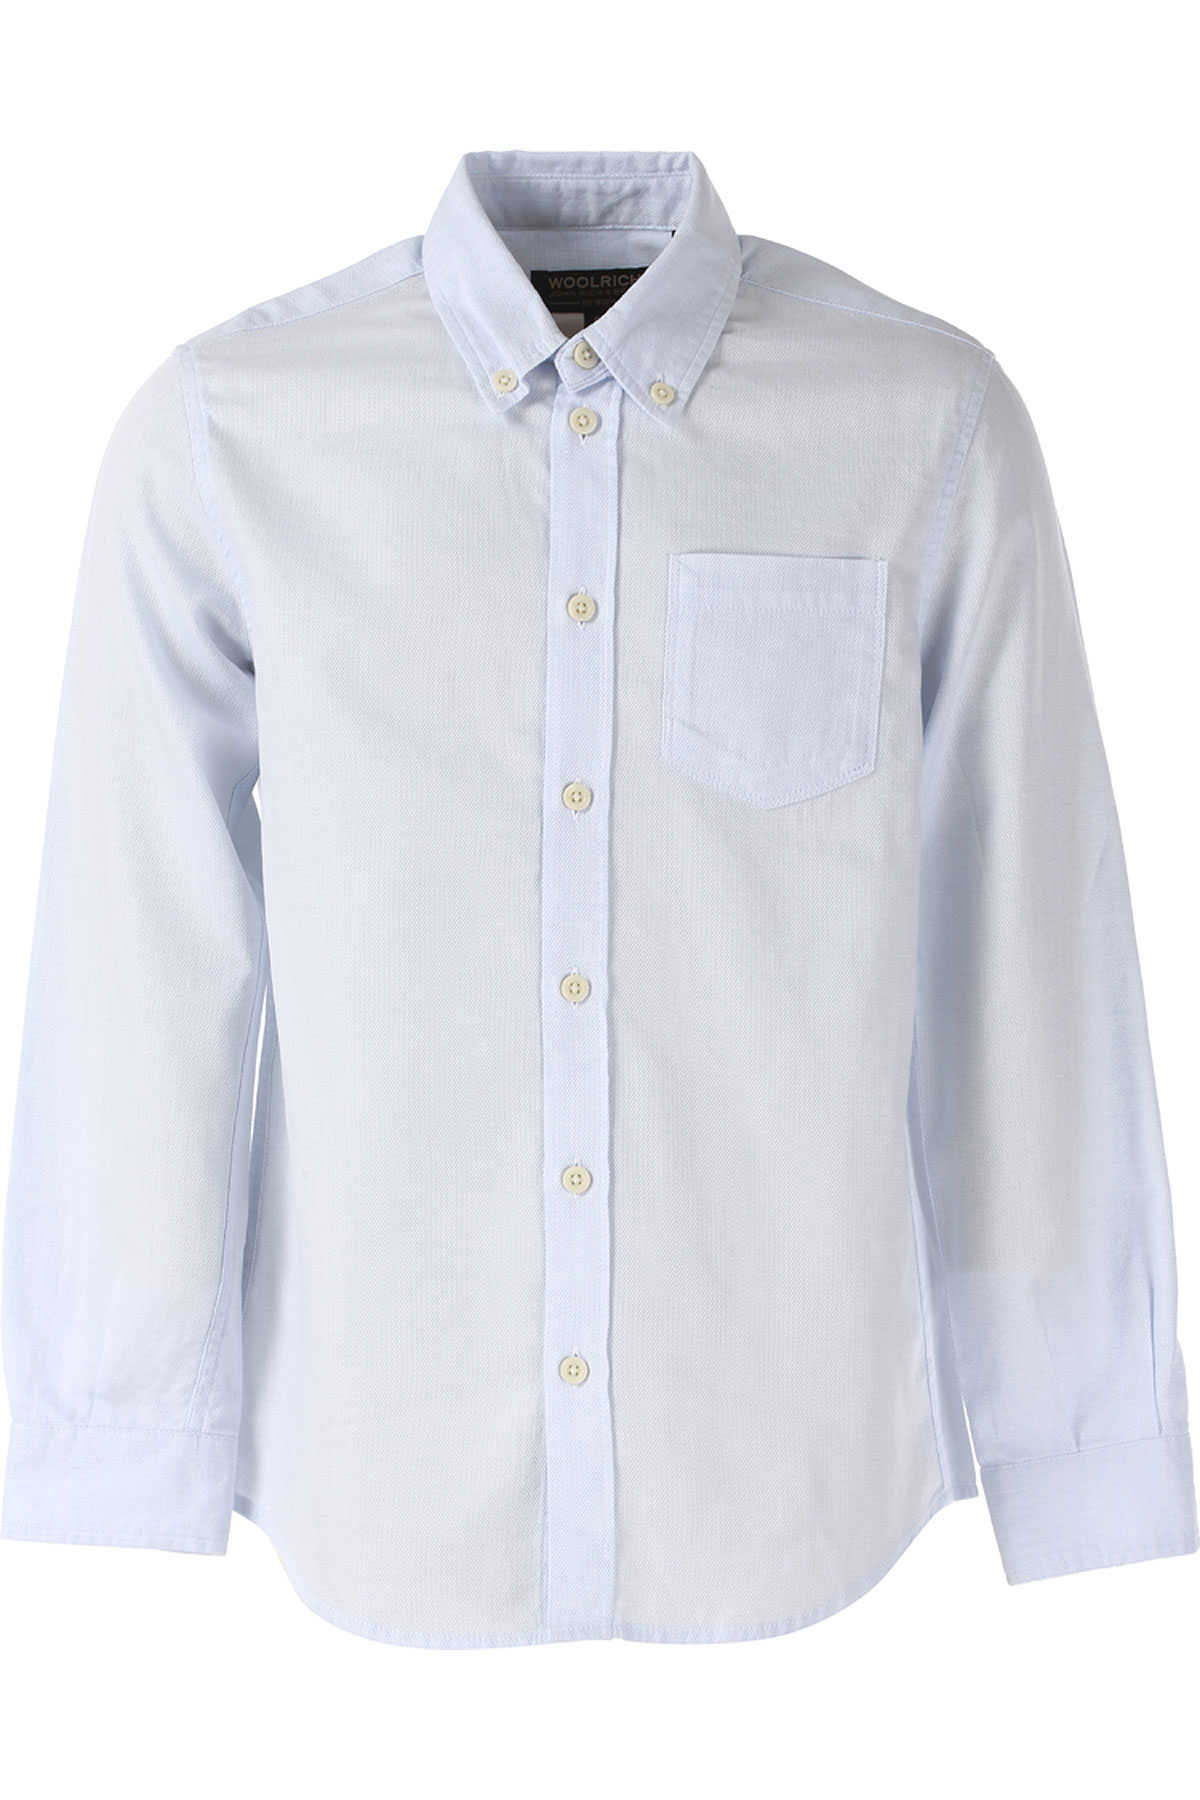 Woolrich Kids Shirts for Boys On Sale in Outlet Pale Blue SE - GOOFASH